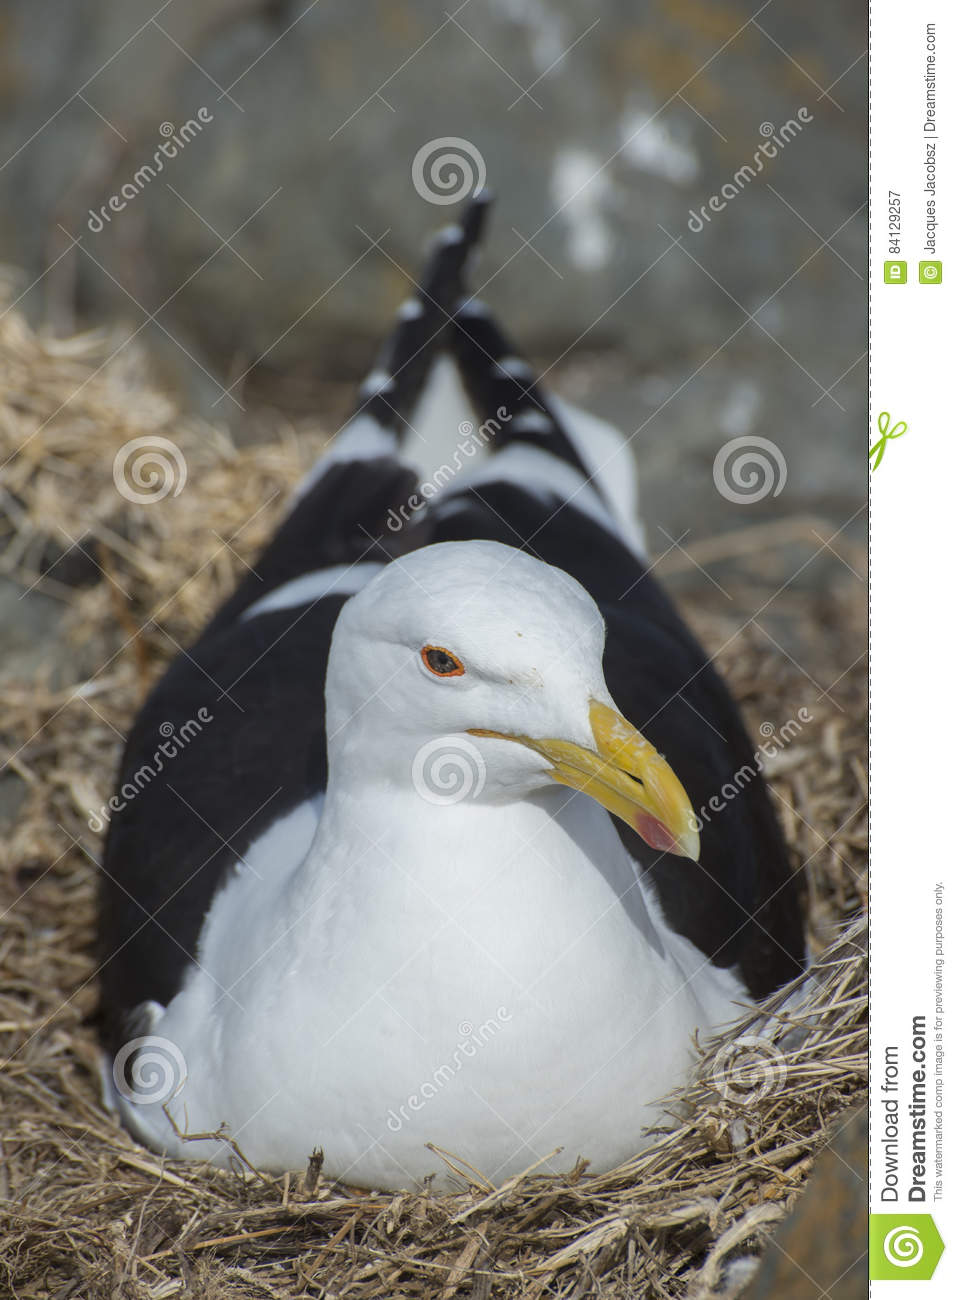 Seagull in Nest on Rocks stock image  Image of cape, storms